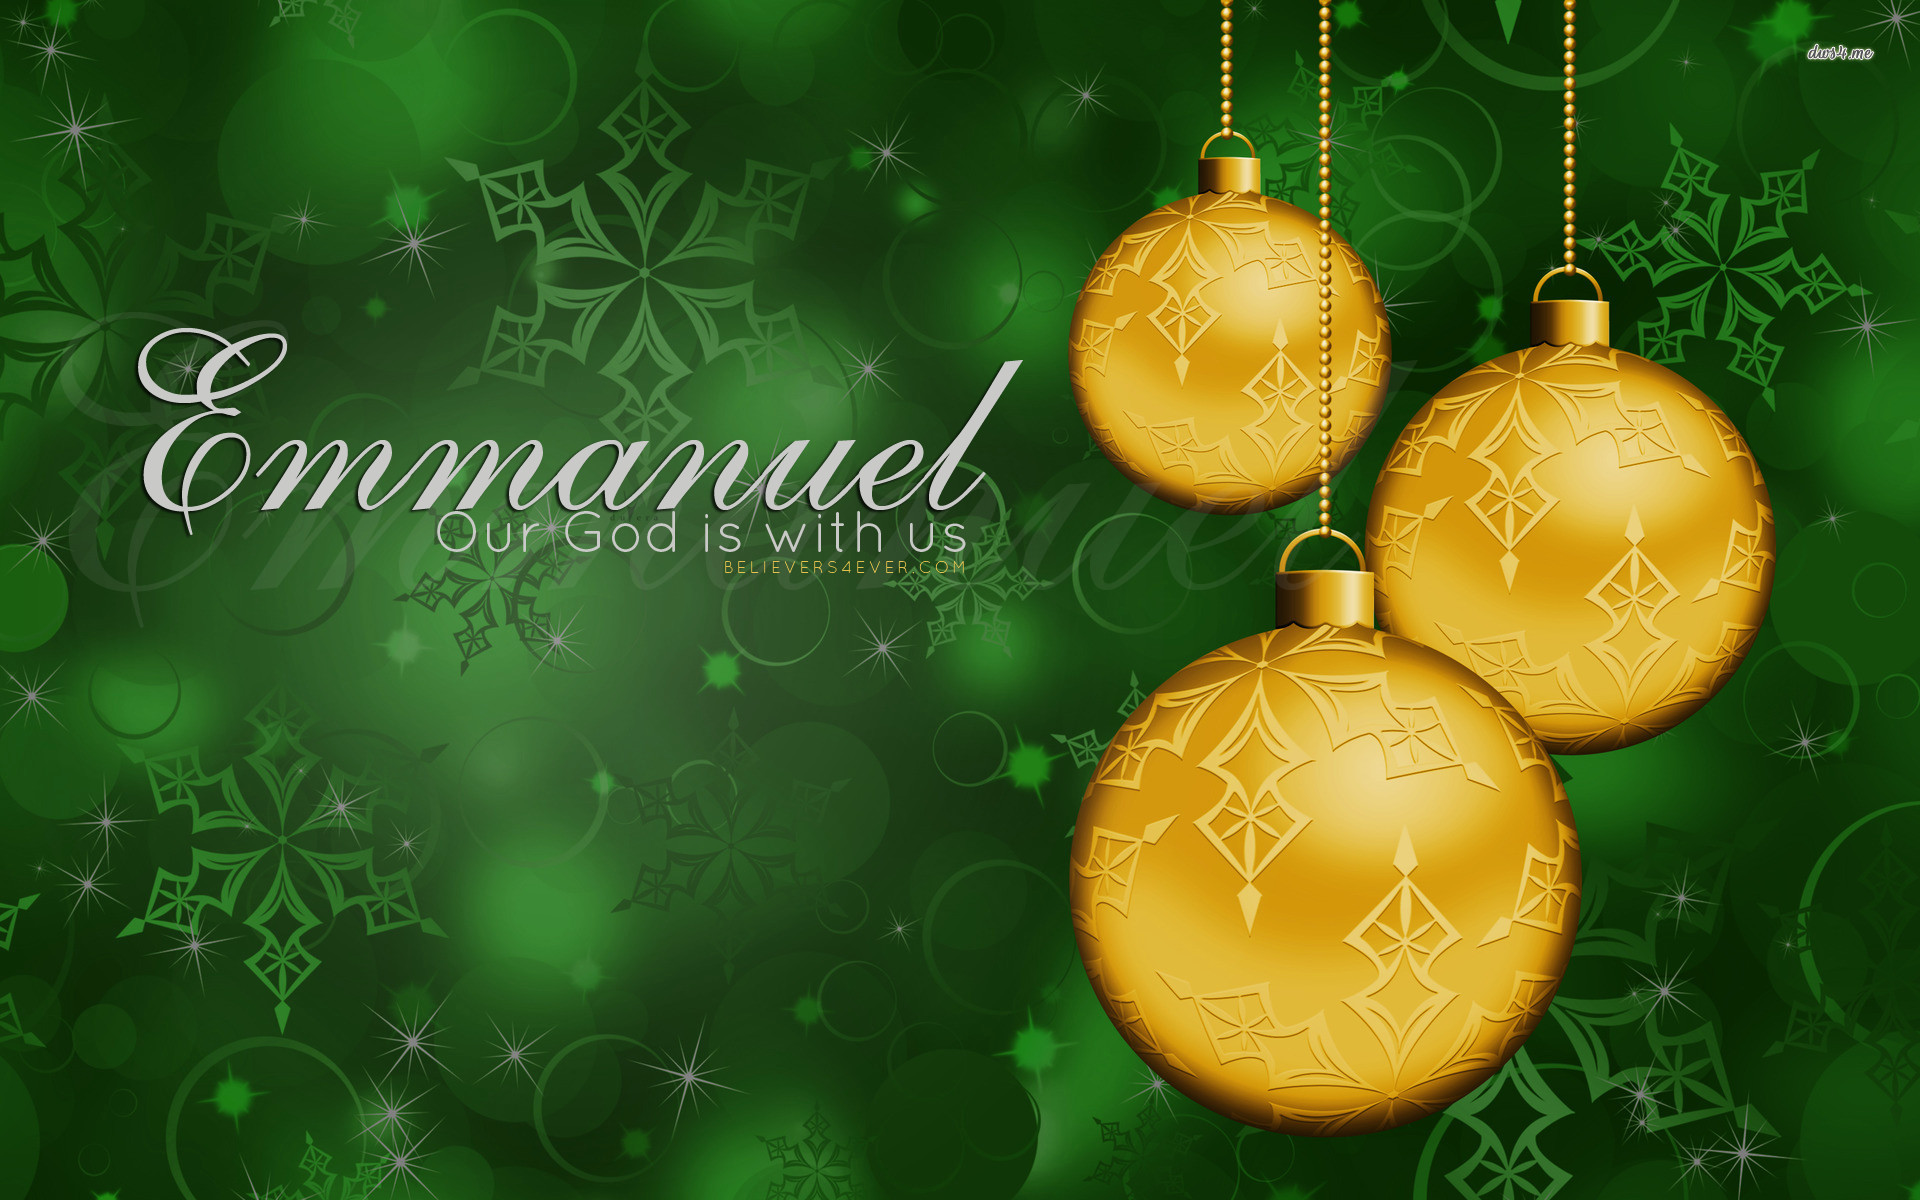 Christian Christmas.Christian Christmas Desktop Wallpaper 53 Images